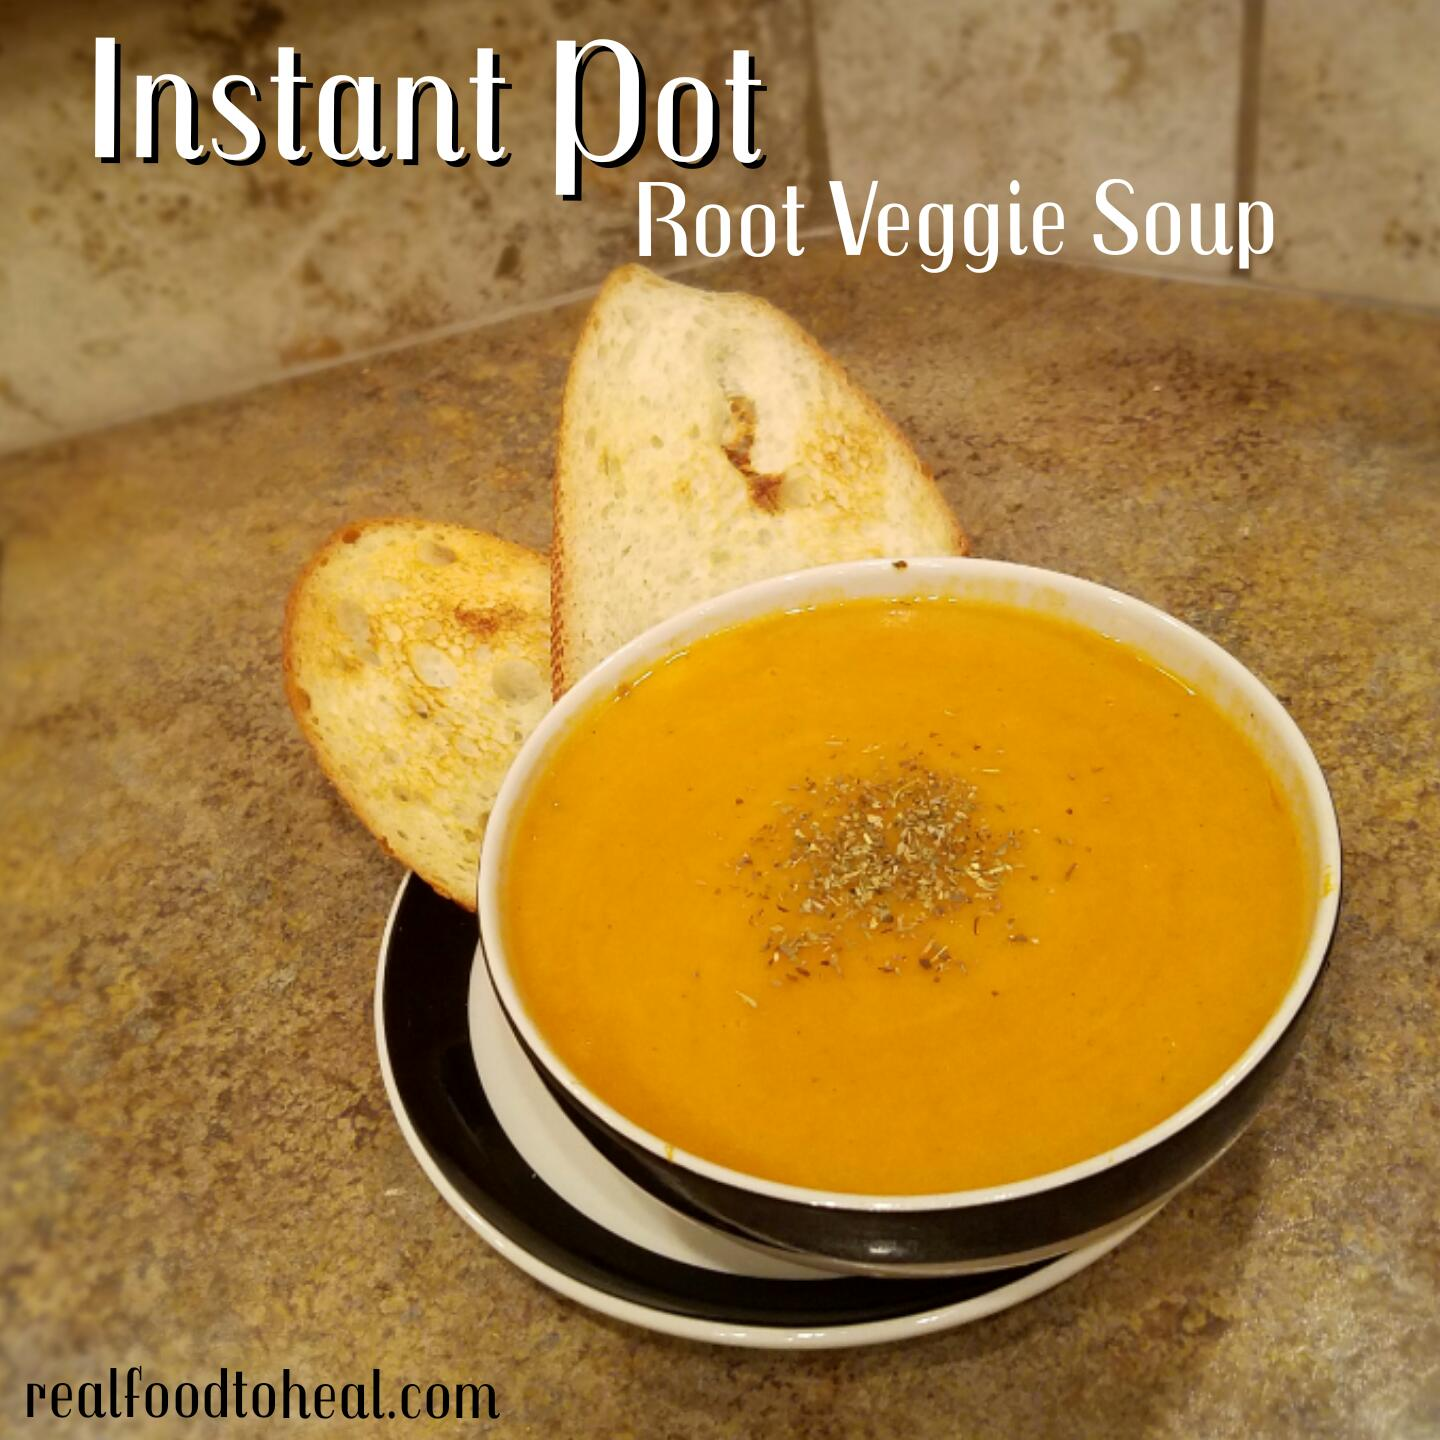 Instant Pot Root Veggie Soup